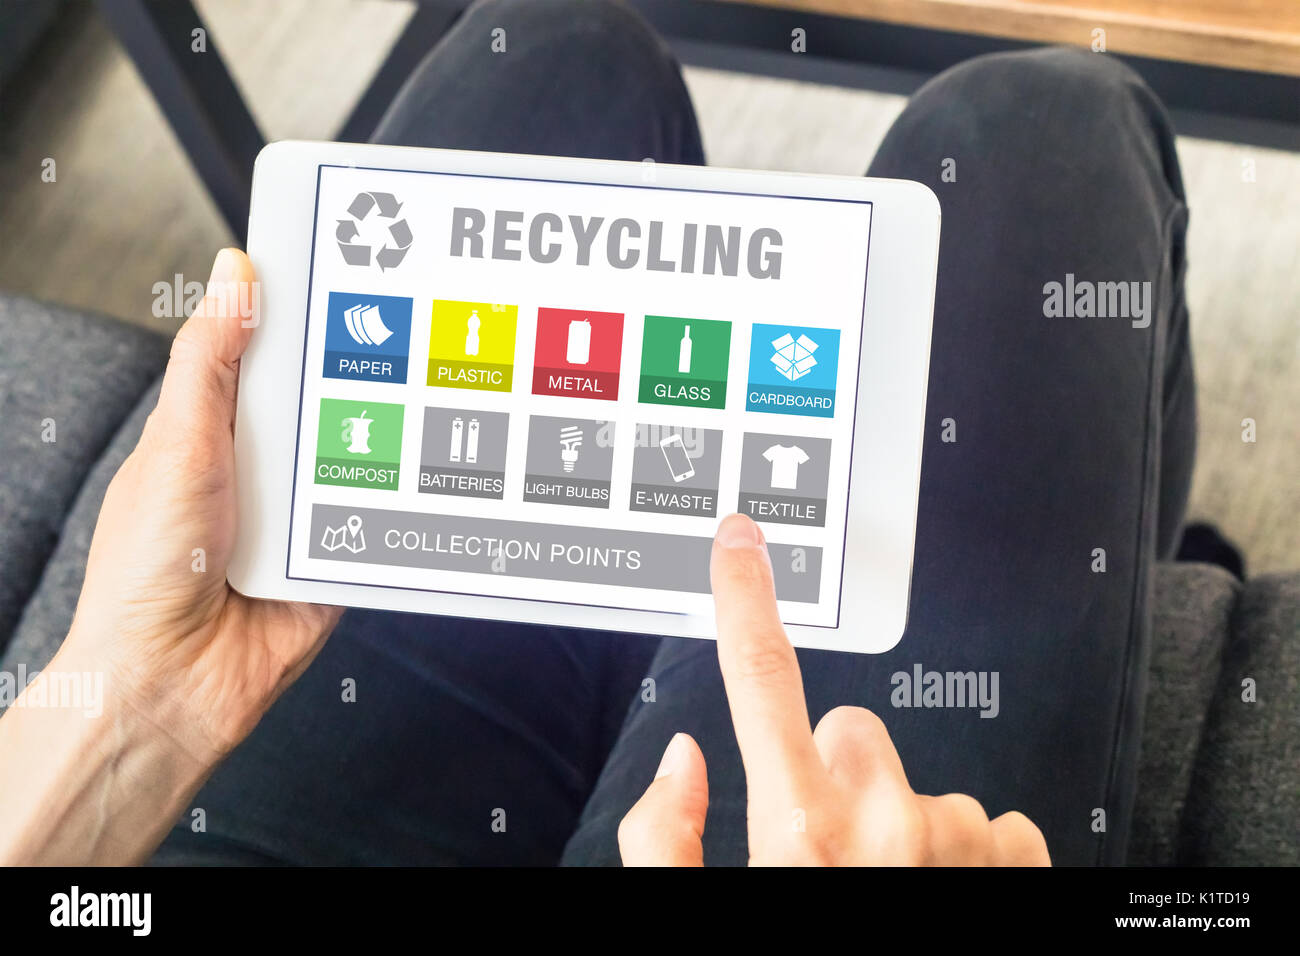 Person using digital tablet computer with app website for sorting recyclable material waste (icons of paper, plastic, metal can, glass bottle, e-waste - Stock Image